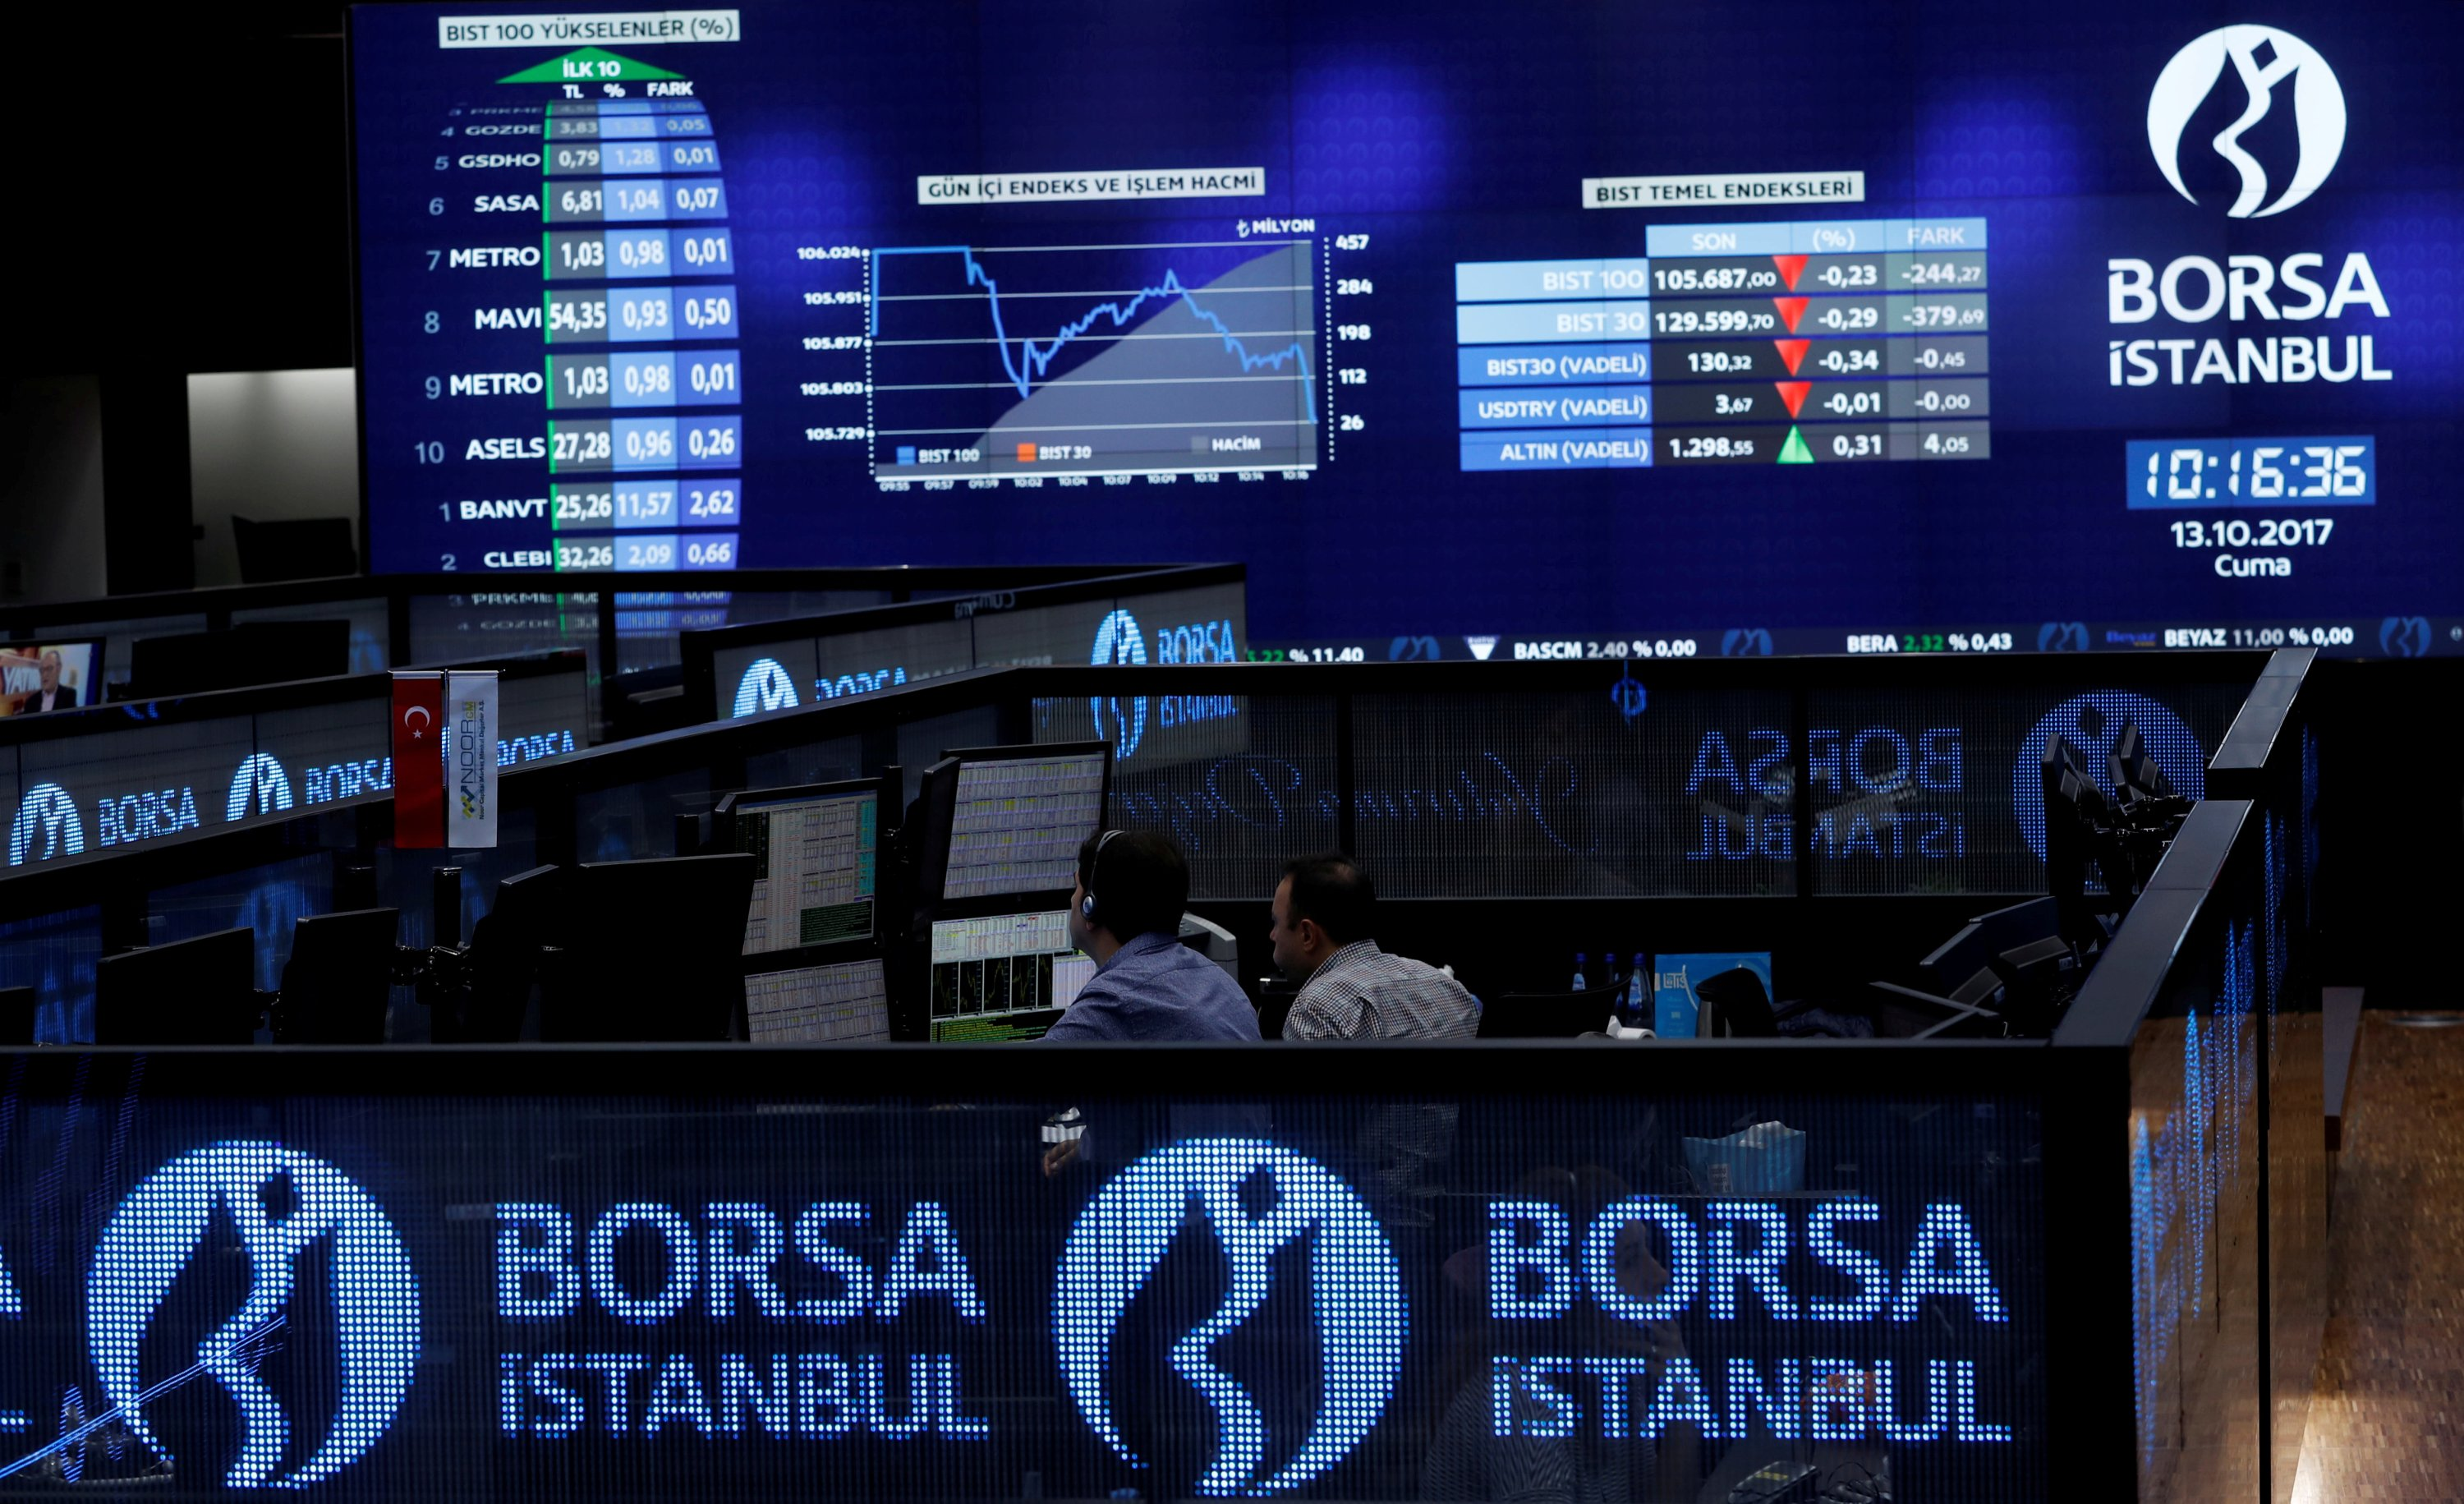 Borsa Istanbul exchange imposes short selling ban on 6 foreign institutions thumbnail